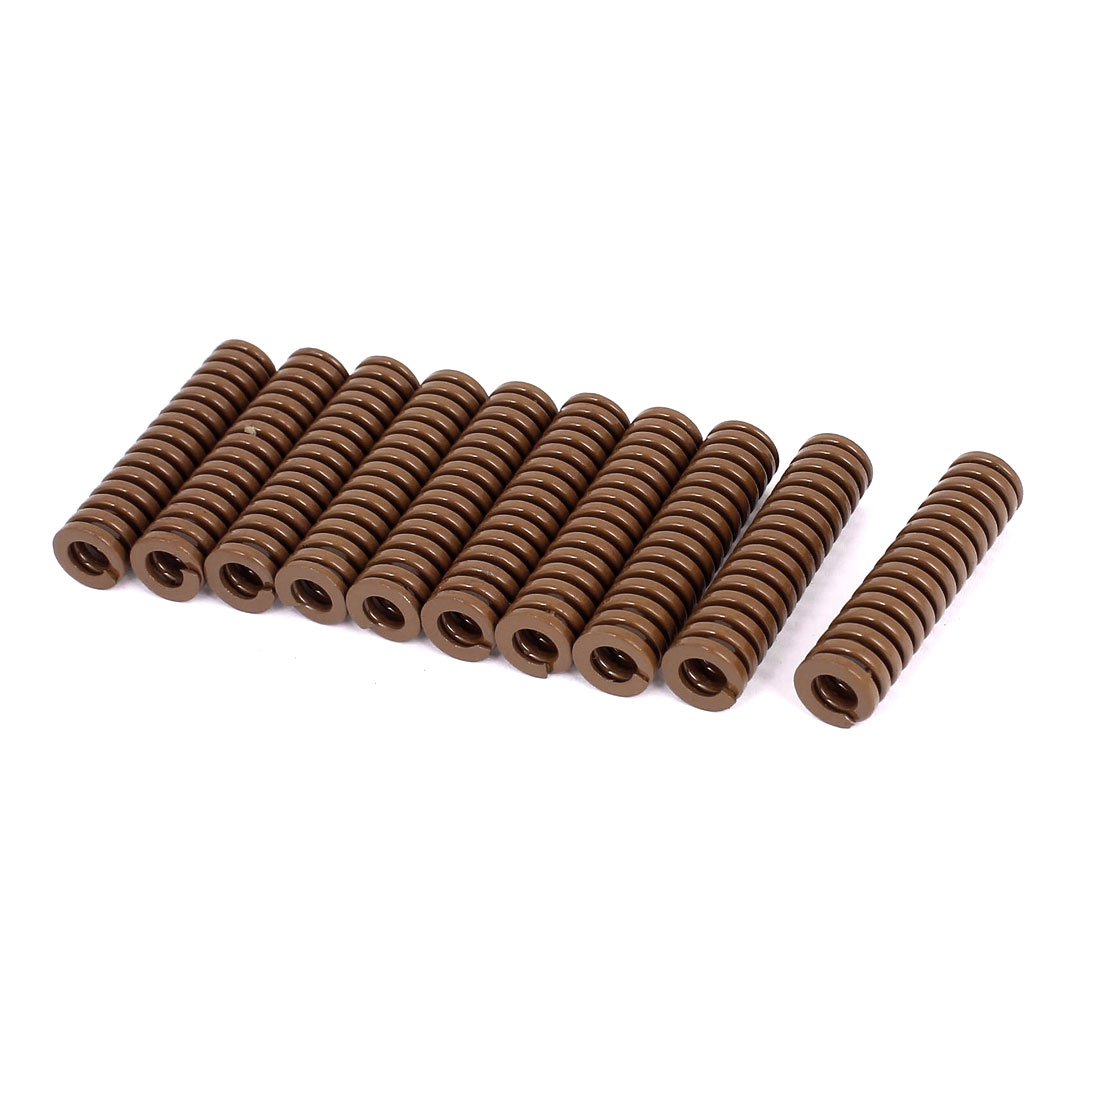 12mm OD 50mm Long Heavy Load Stamping Compression Mold Die Spring Brown 10pcs